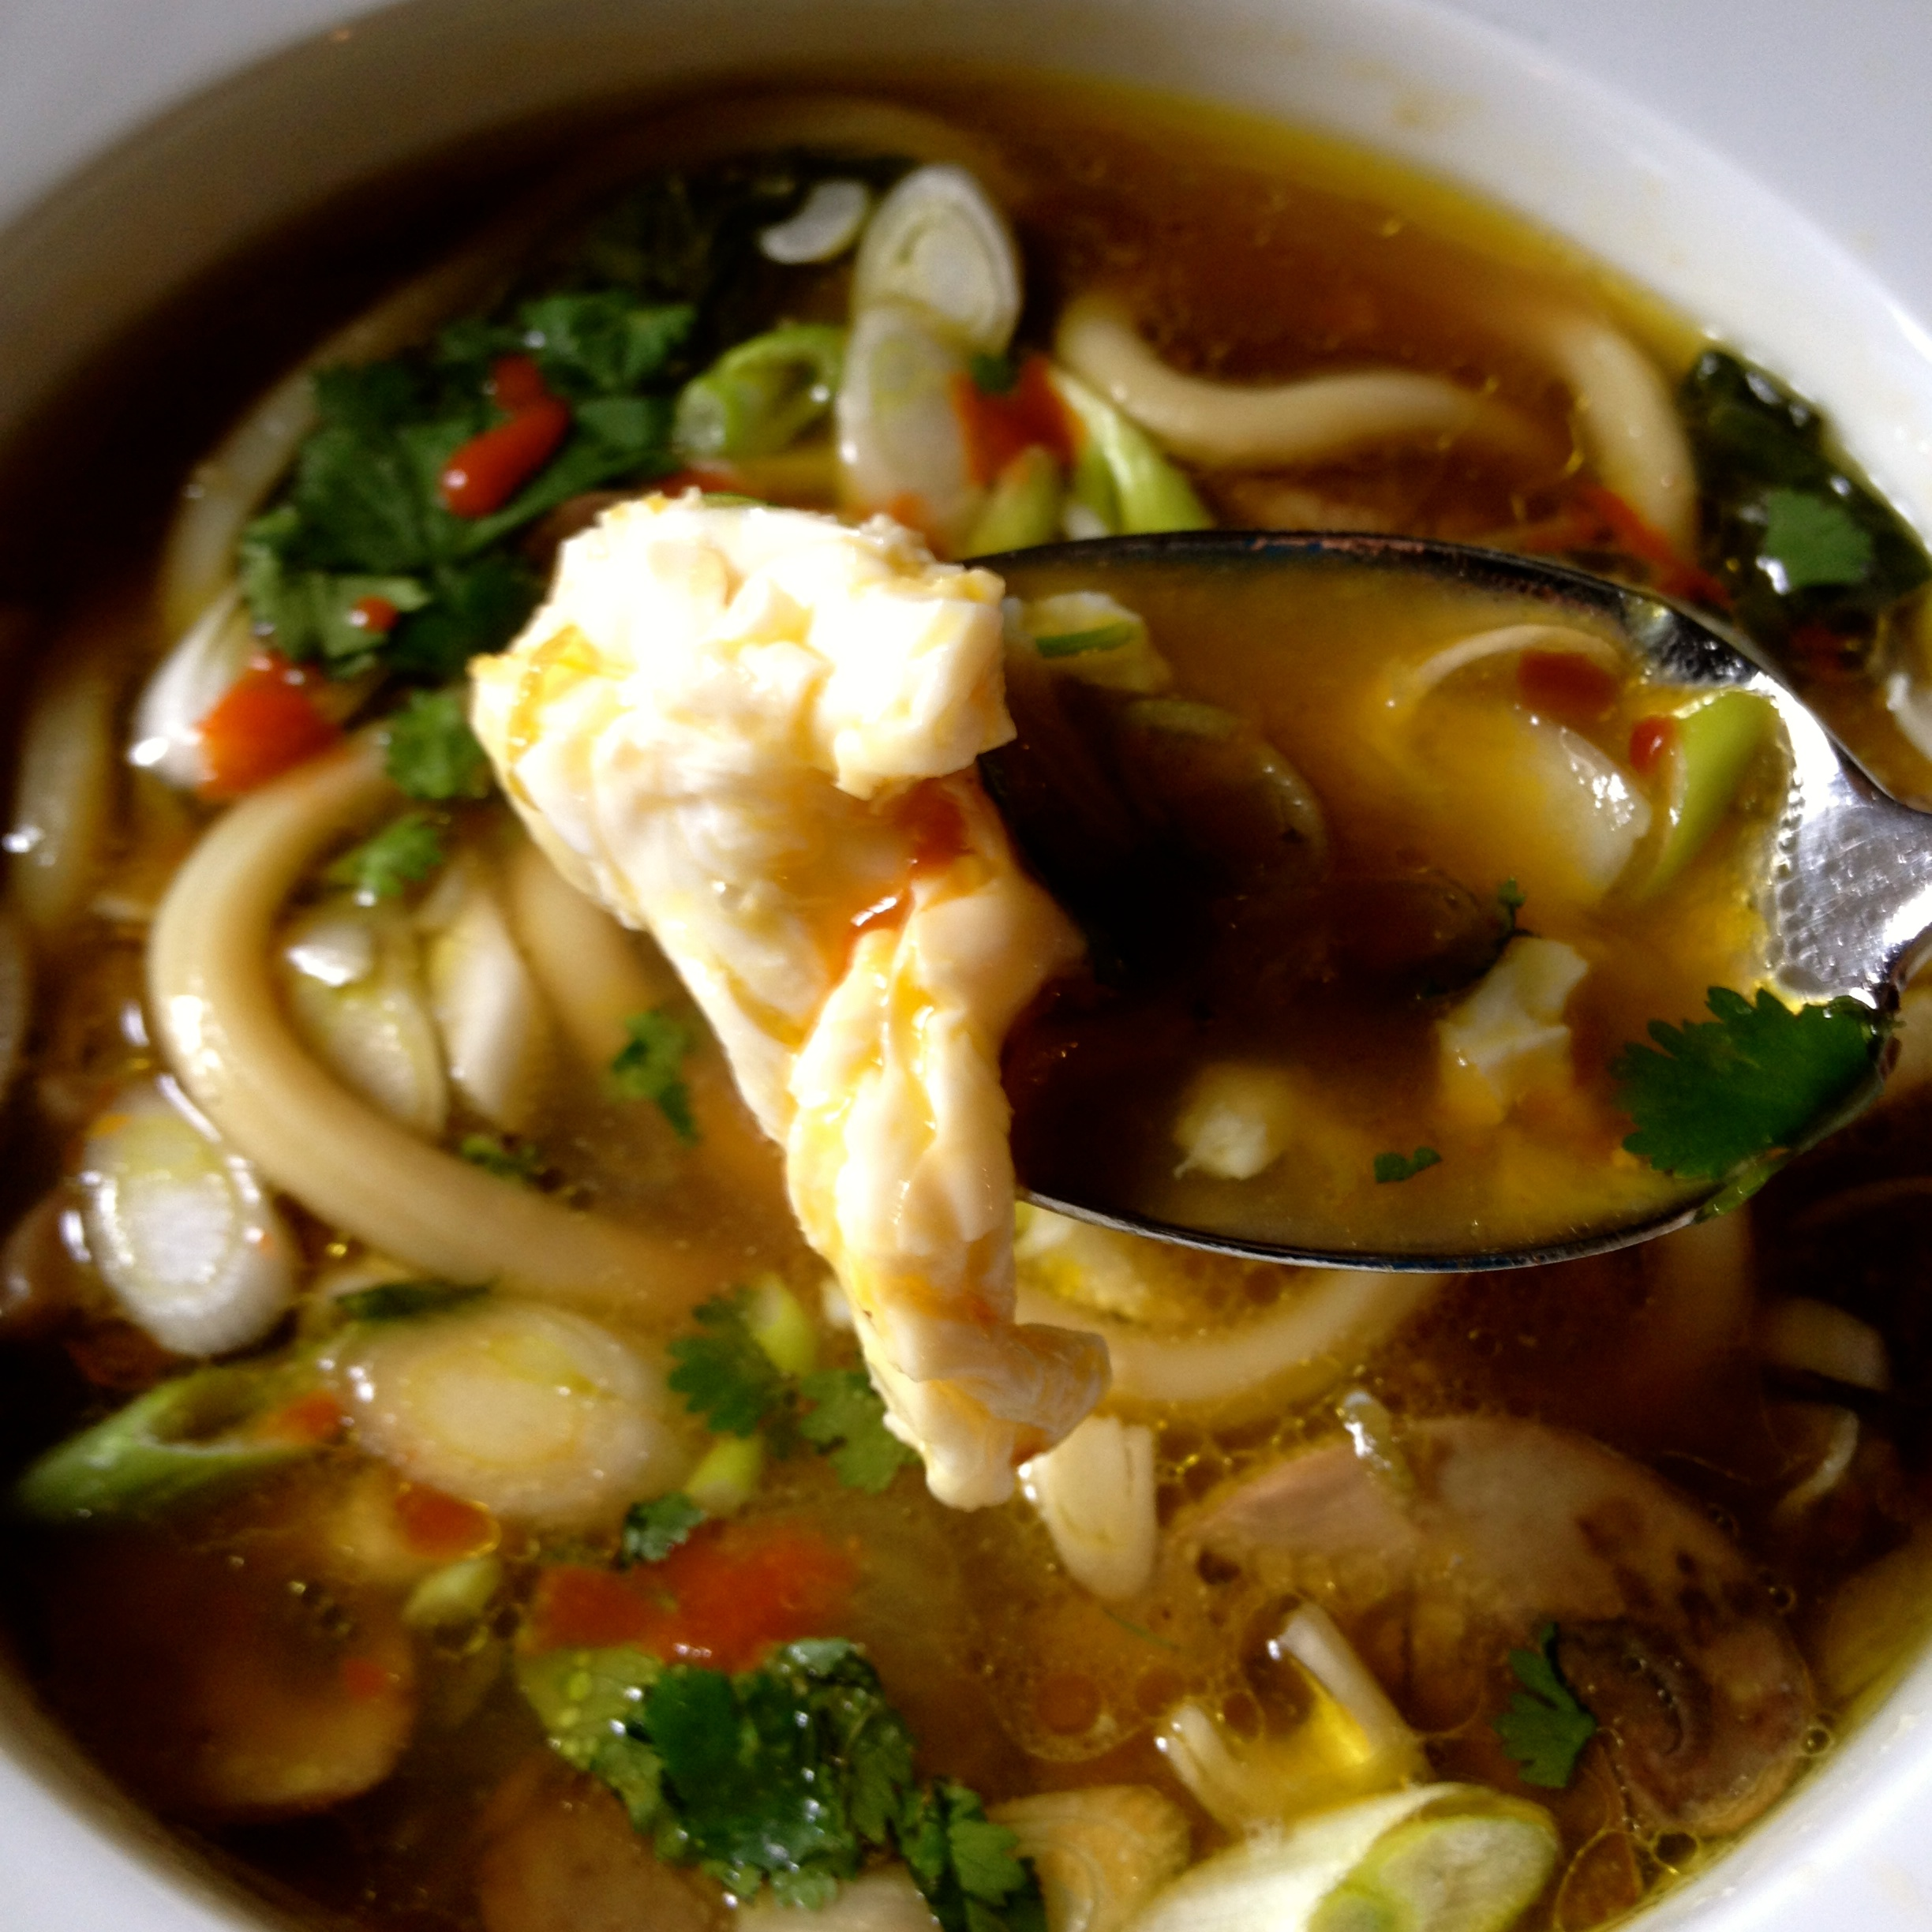 Udon Noodle Soup with Bok Choy and Mushrooms